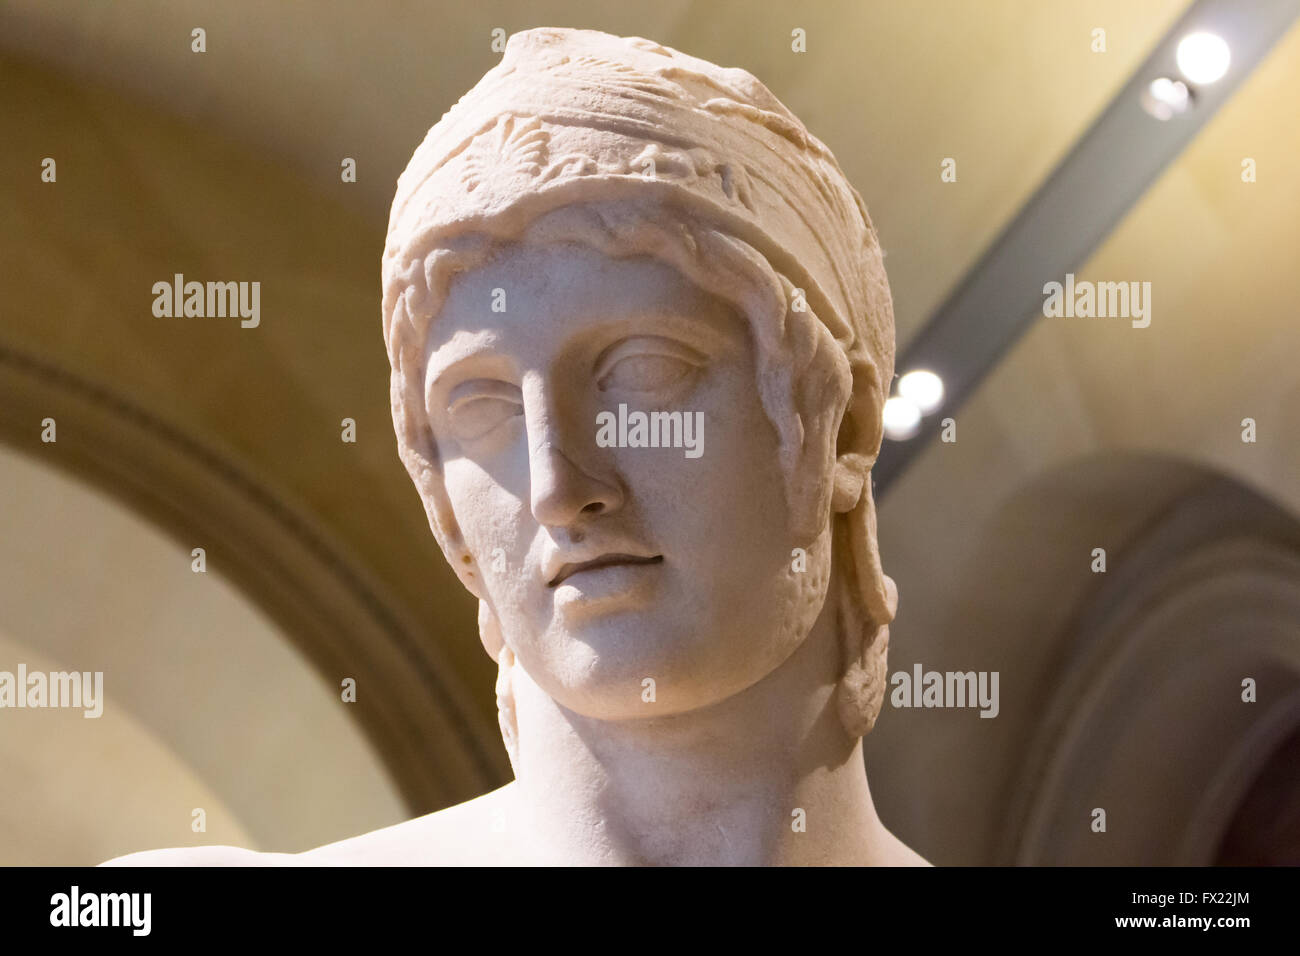 Ares Borghese, famous Roman marble statuefrom the Imperial Era, 1st or 2nd century AD. - Stock Image